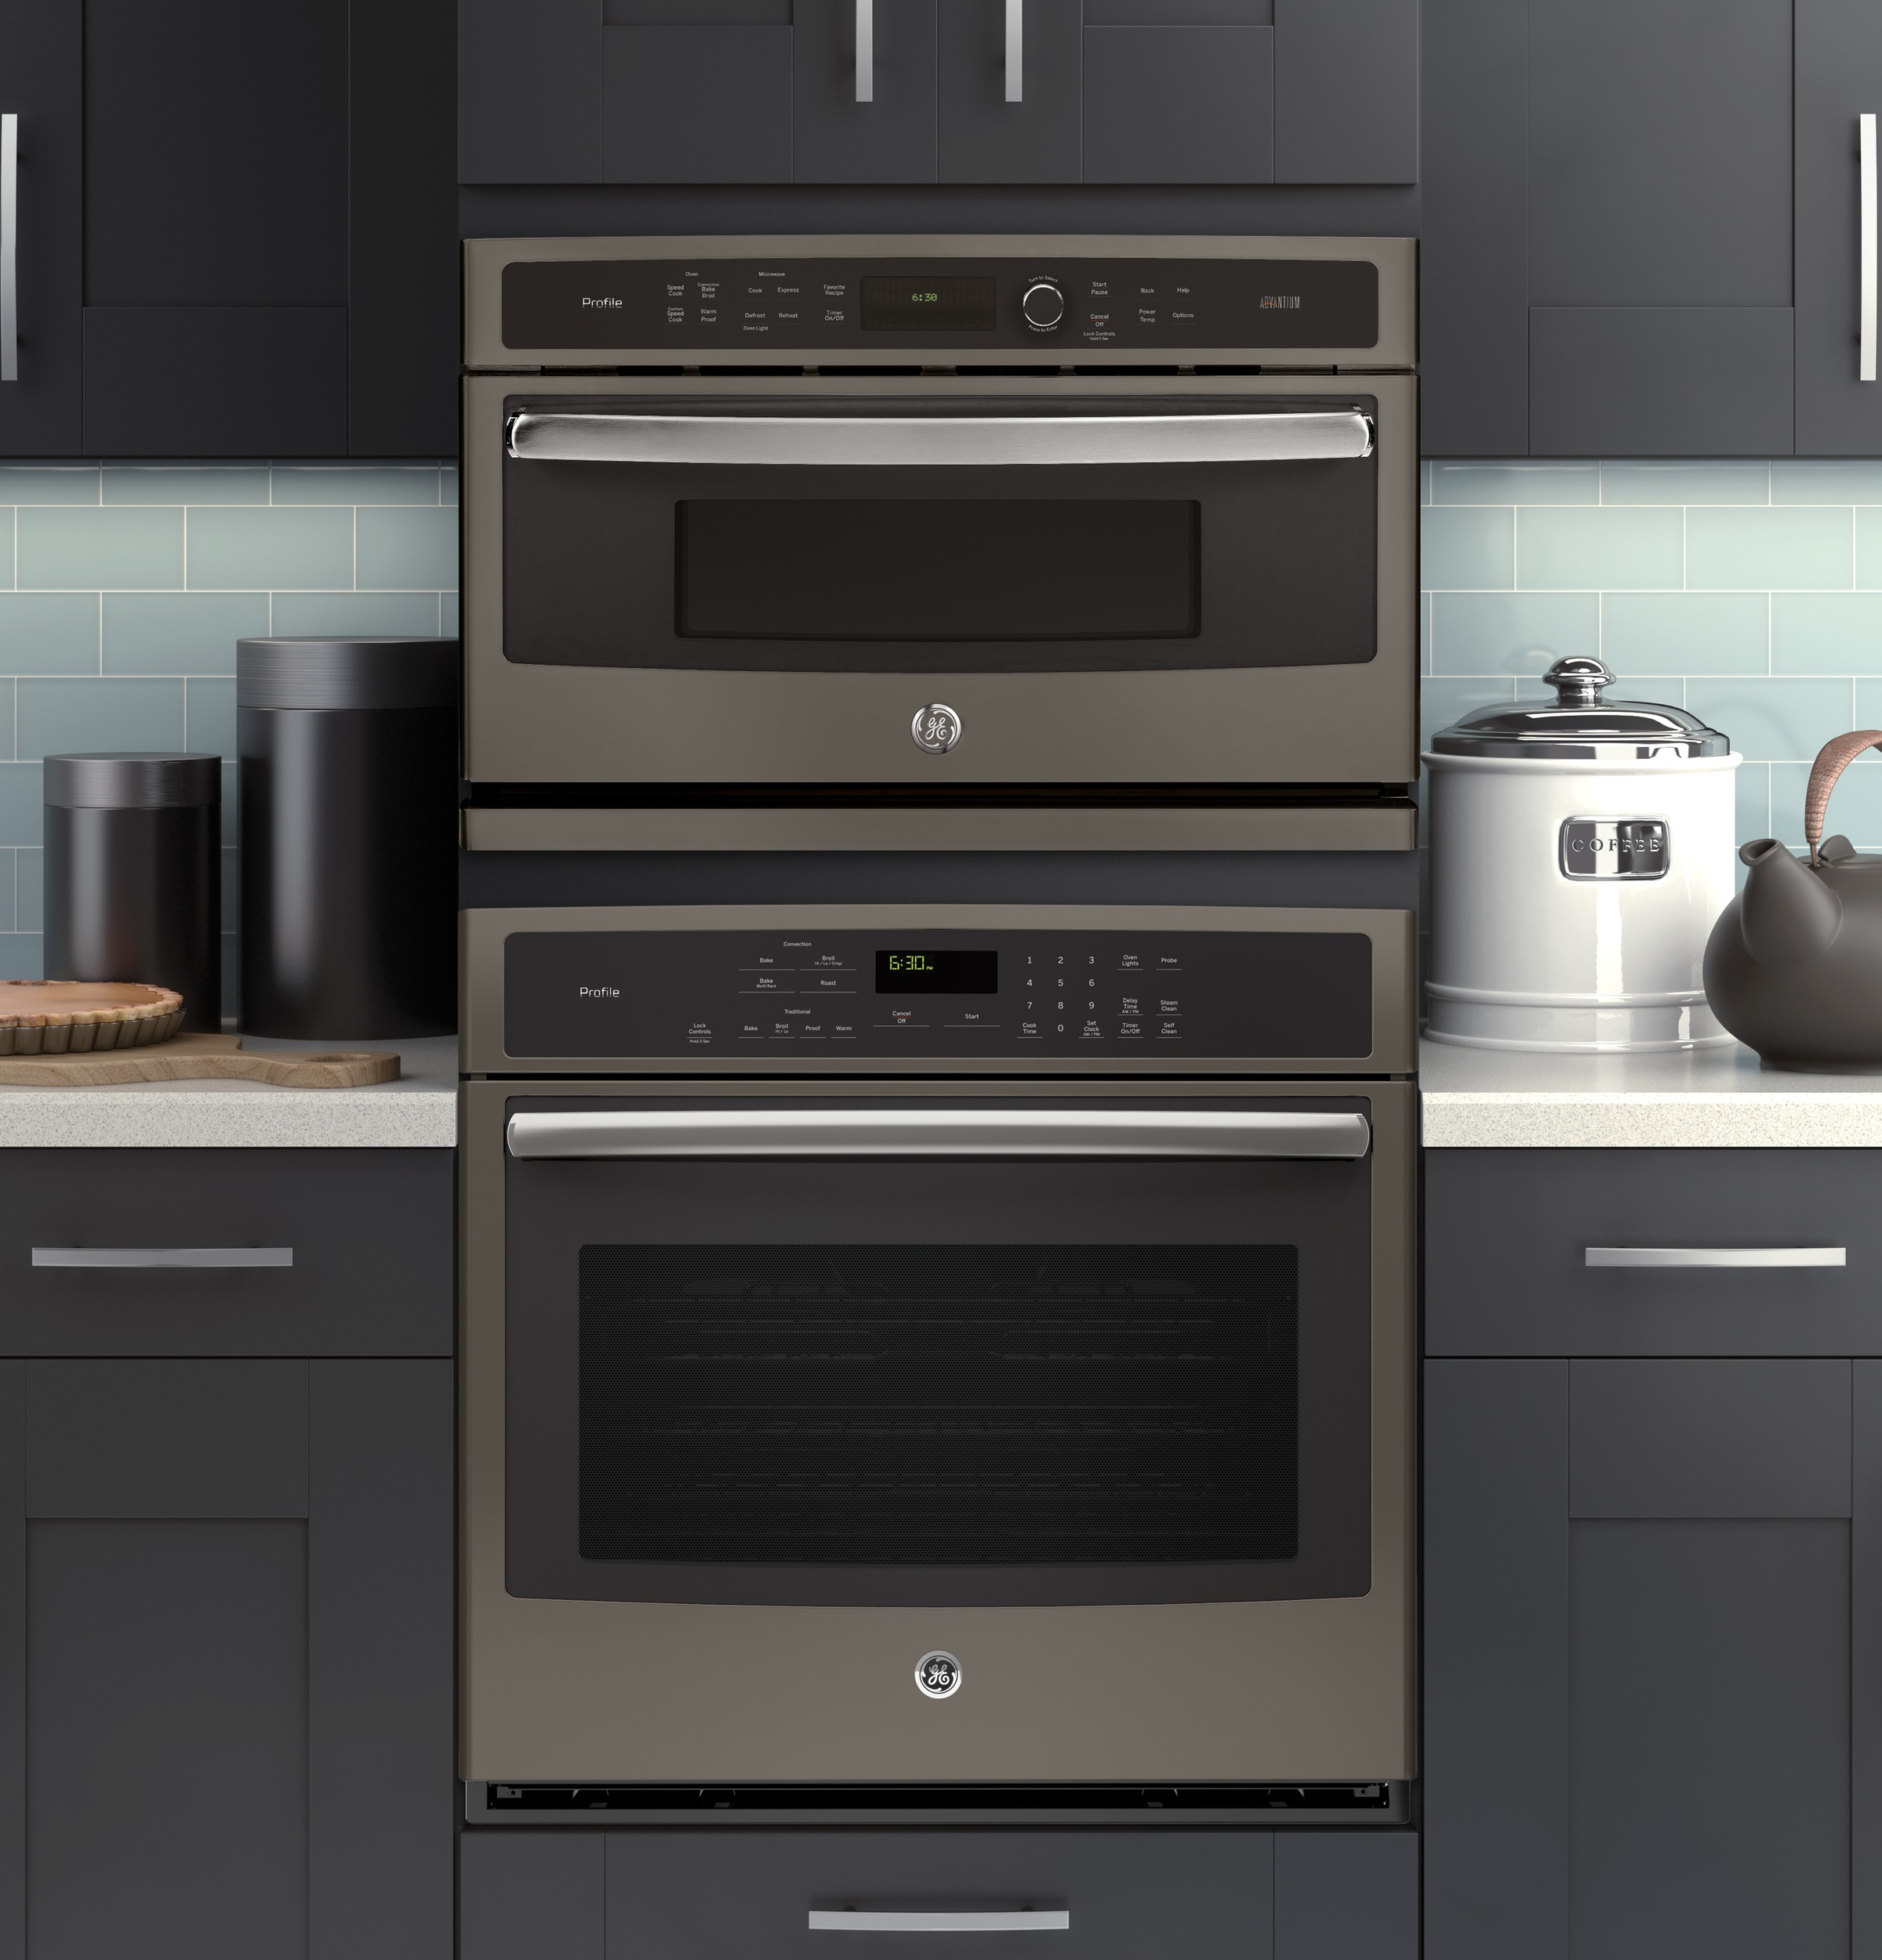 Model: PSB9240EFES | GE Profile™ Series 30 in. Single Wall Oven with Advantium® Technology